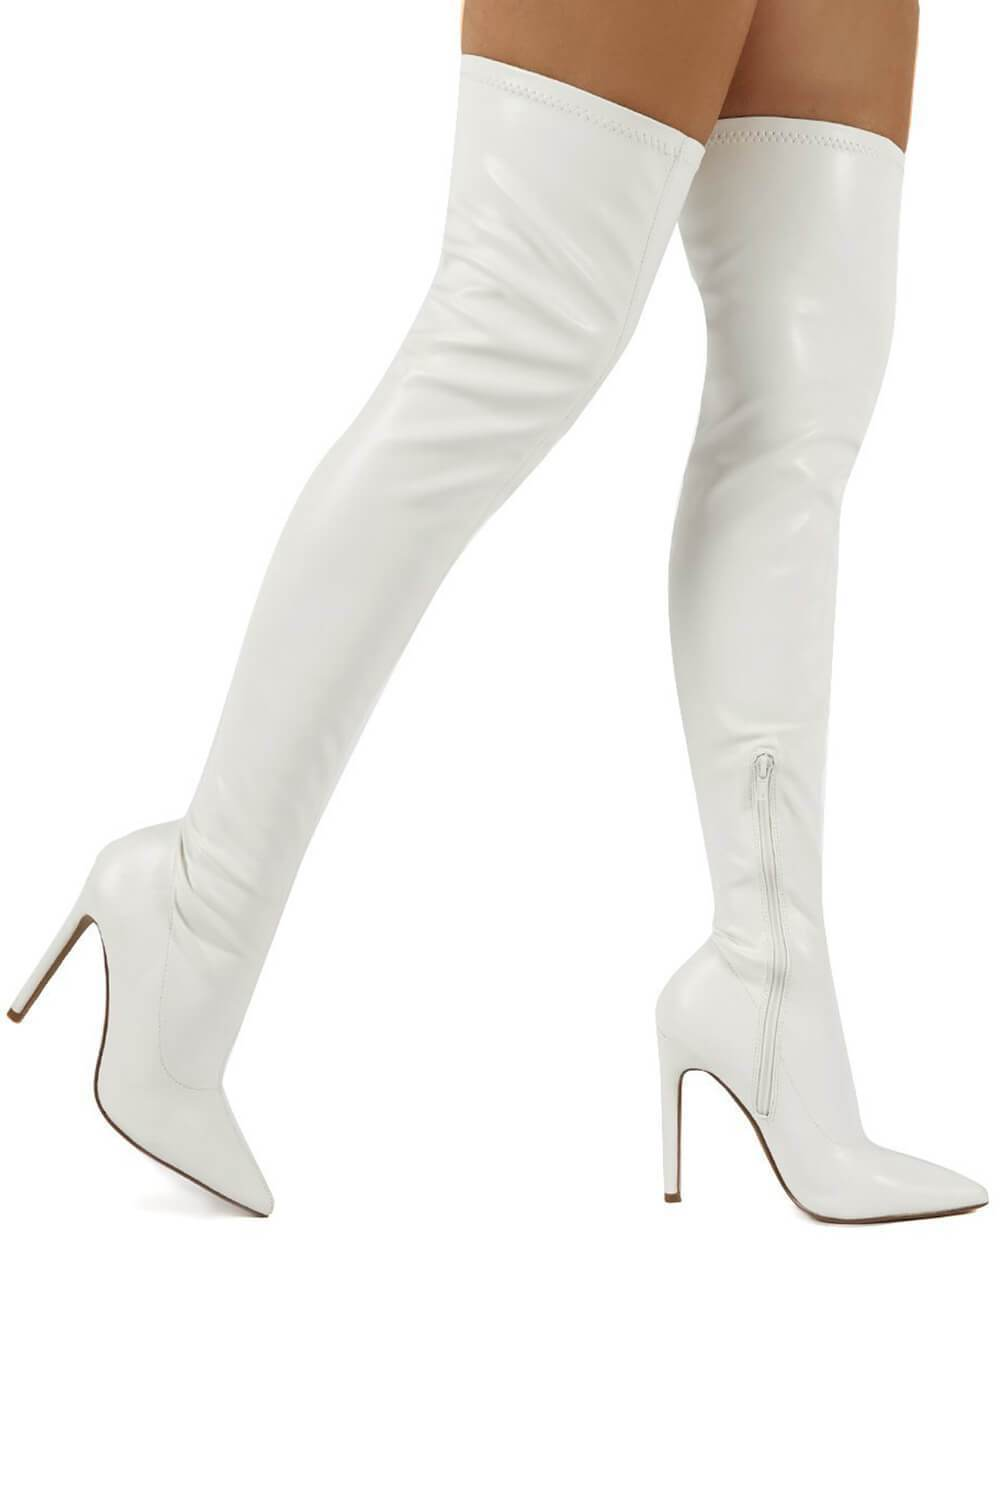 White Patent Stiletto Heeled Over The Knee Pu Boot